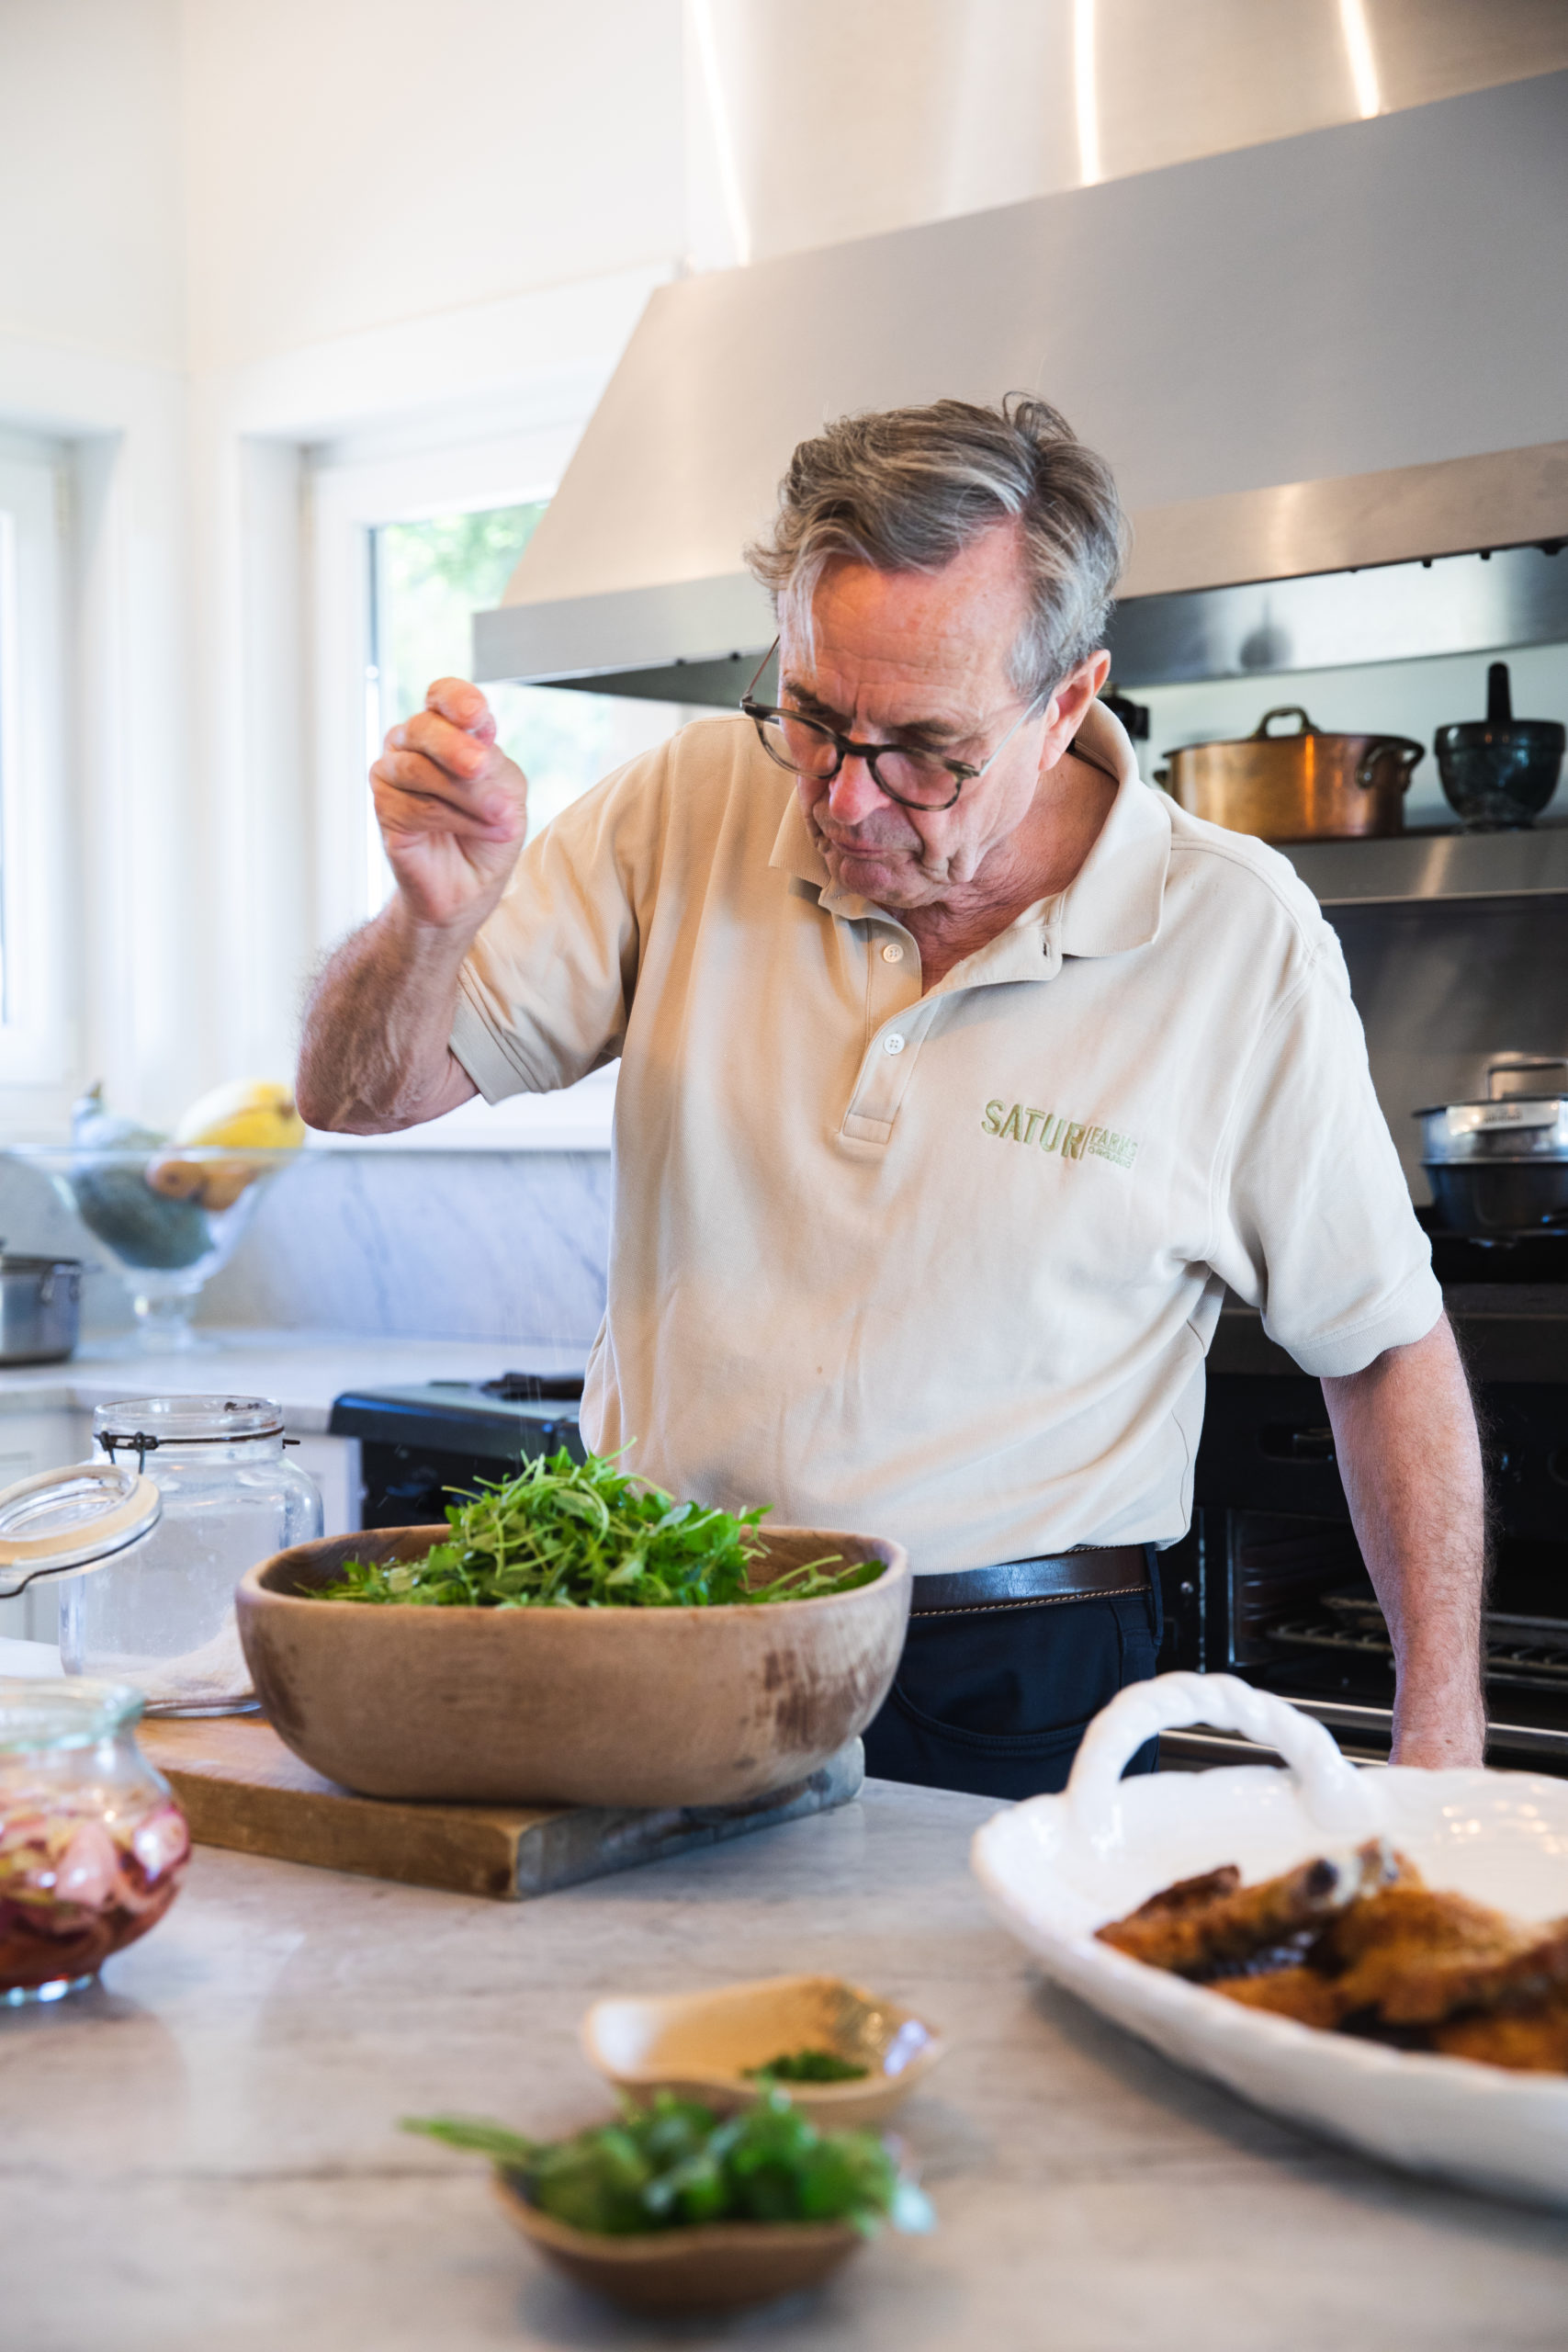 Chef Eberhard Müller contributed several recipes to the May volume of the Loaves & Fishes Farm Series.